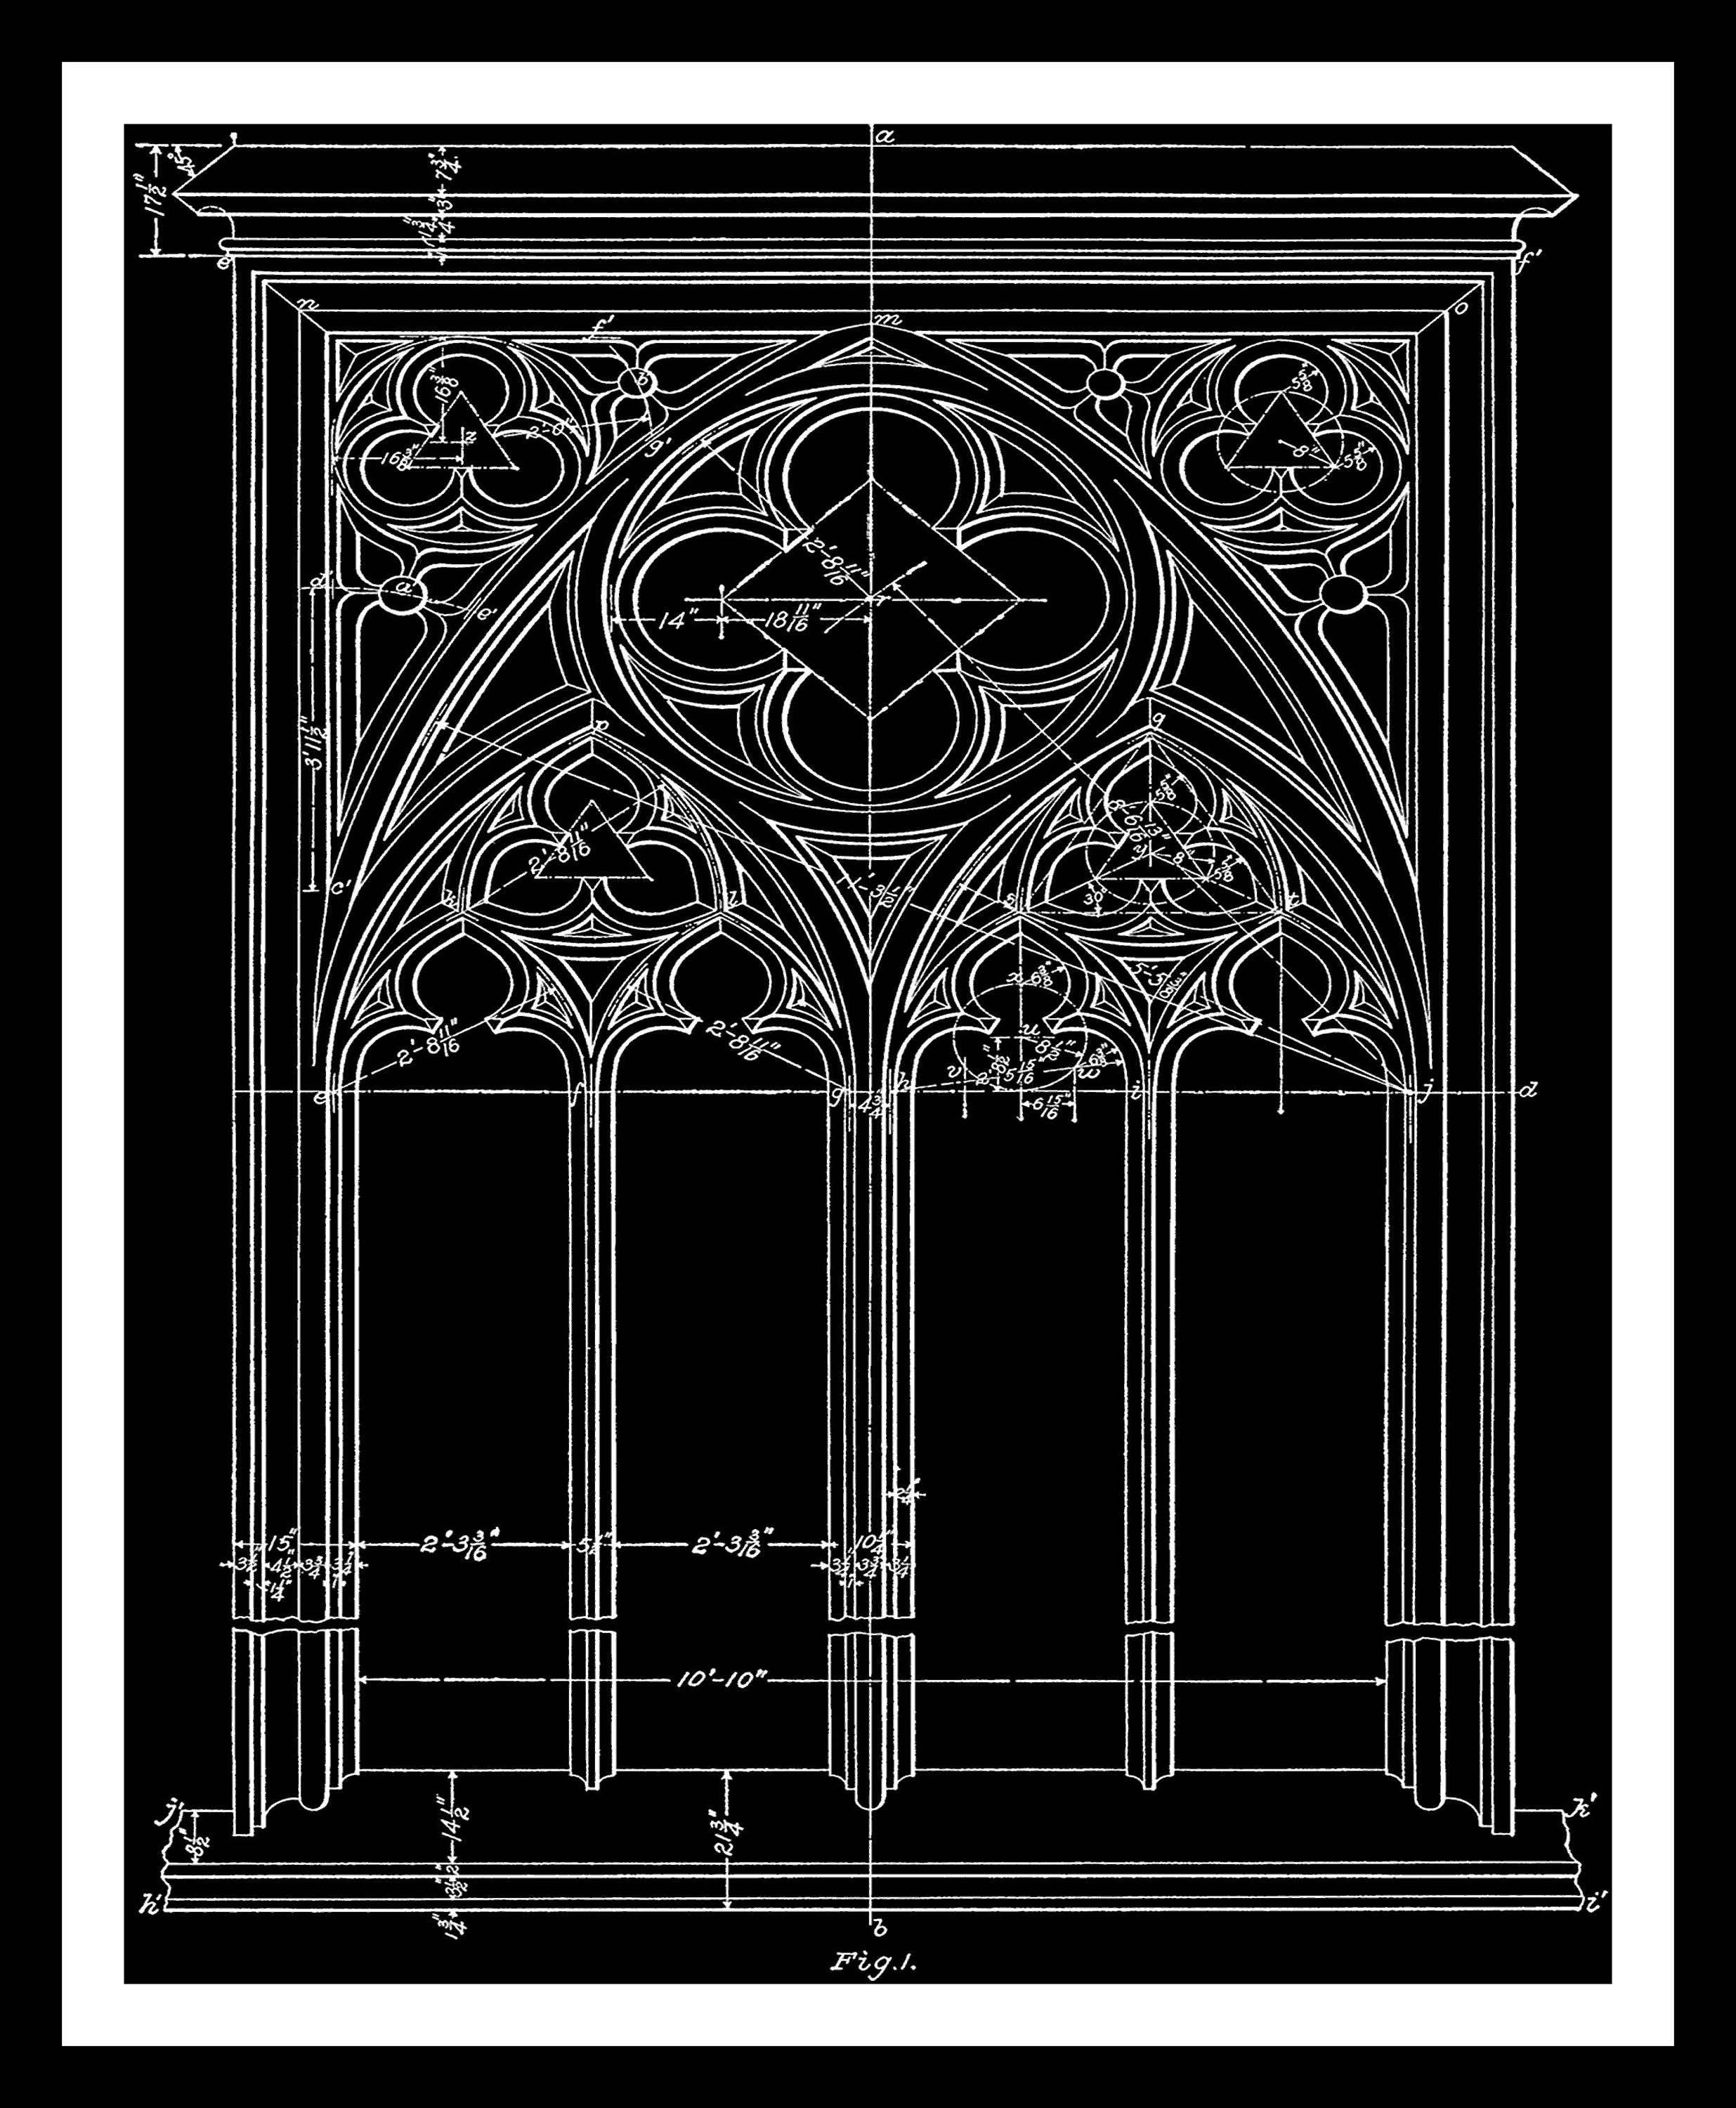 Window blueprint in black architecture gothic architectural wall window blueprint in black architecture gothic architectural wall decor window drawing architectural print craft art instant download malvernweather Images